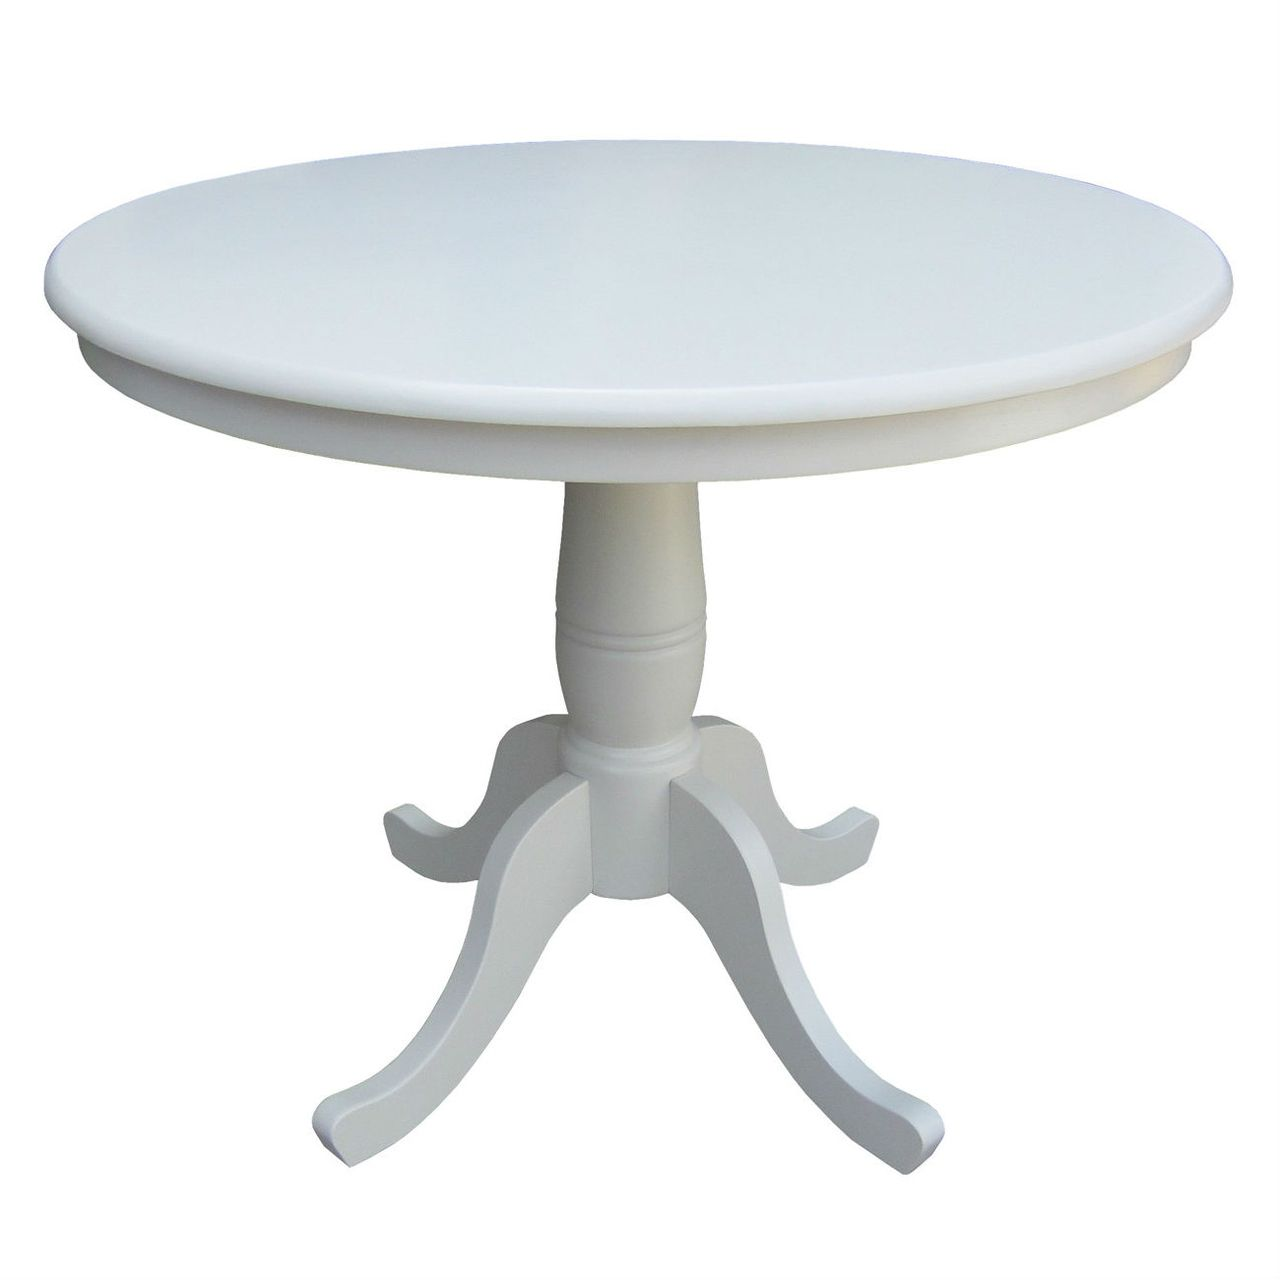 Round 30 Inch Dining Table In White Wood Finish And Pedestal Base Dining Table 36 Round Dining Table Round Pedestal Dining